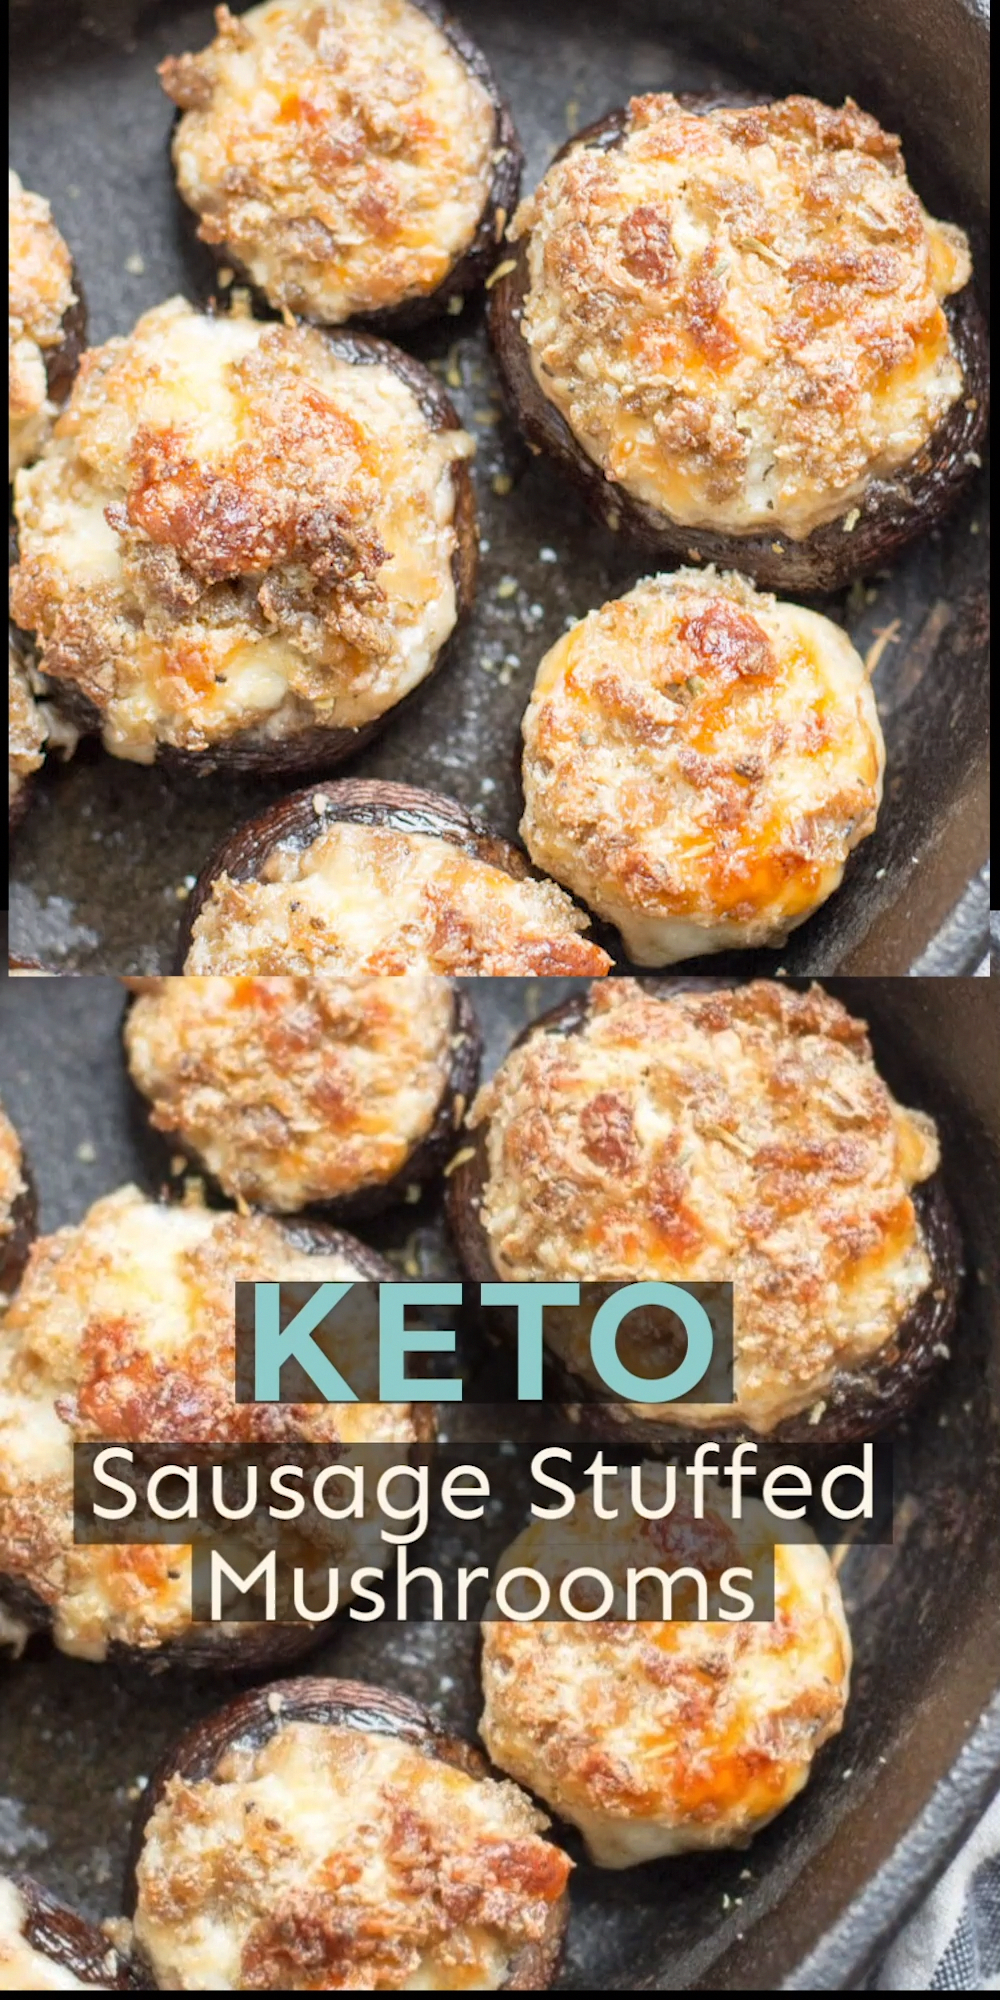 Easy Keto Stuffed Mushrooms are loaded with spicy sausage and cheese for the perfect keto appetizer! #keto #lowcarb #KetogenicNutrition